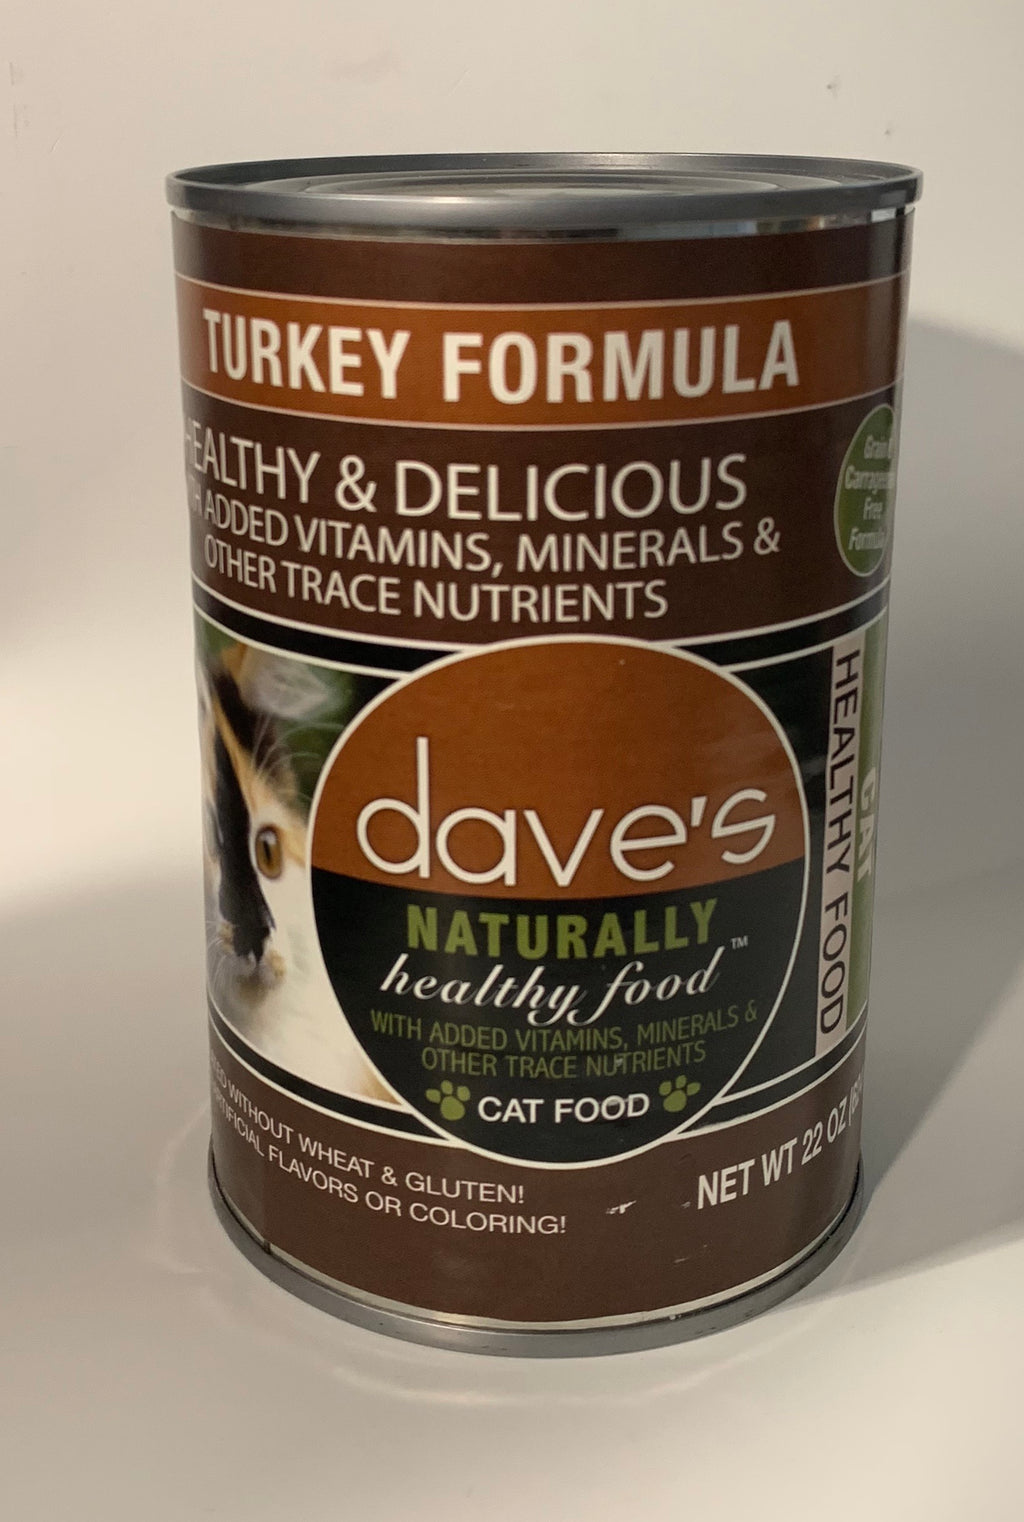 Dave's Naturally Healthy Chicken Formula Canned Cat Food 22oz Cans